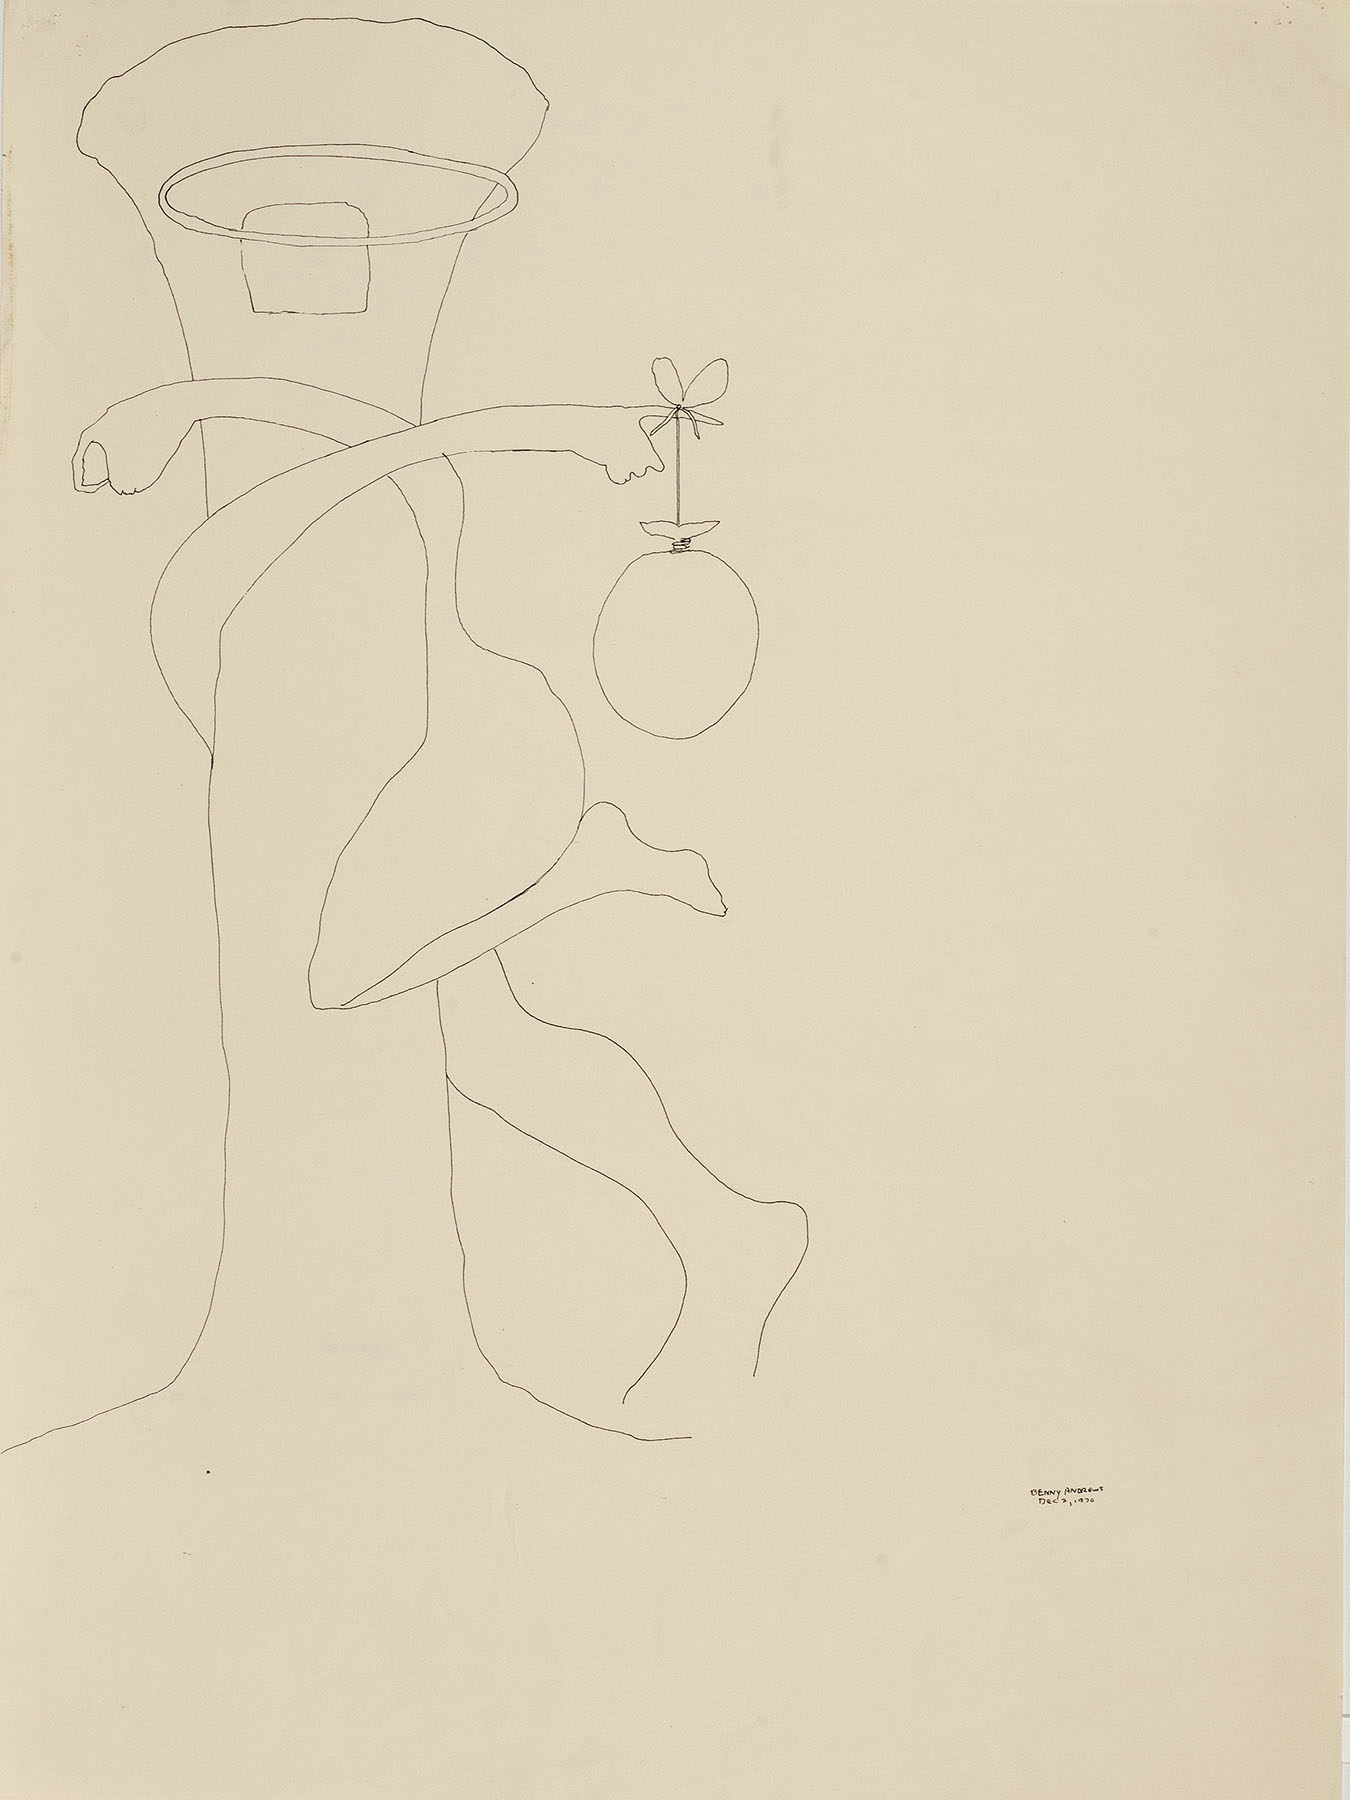 """Teaser (Black Athlete Study #2), 1970 pen and ink on paper 24 x 18"""""""